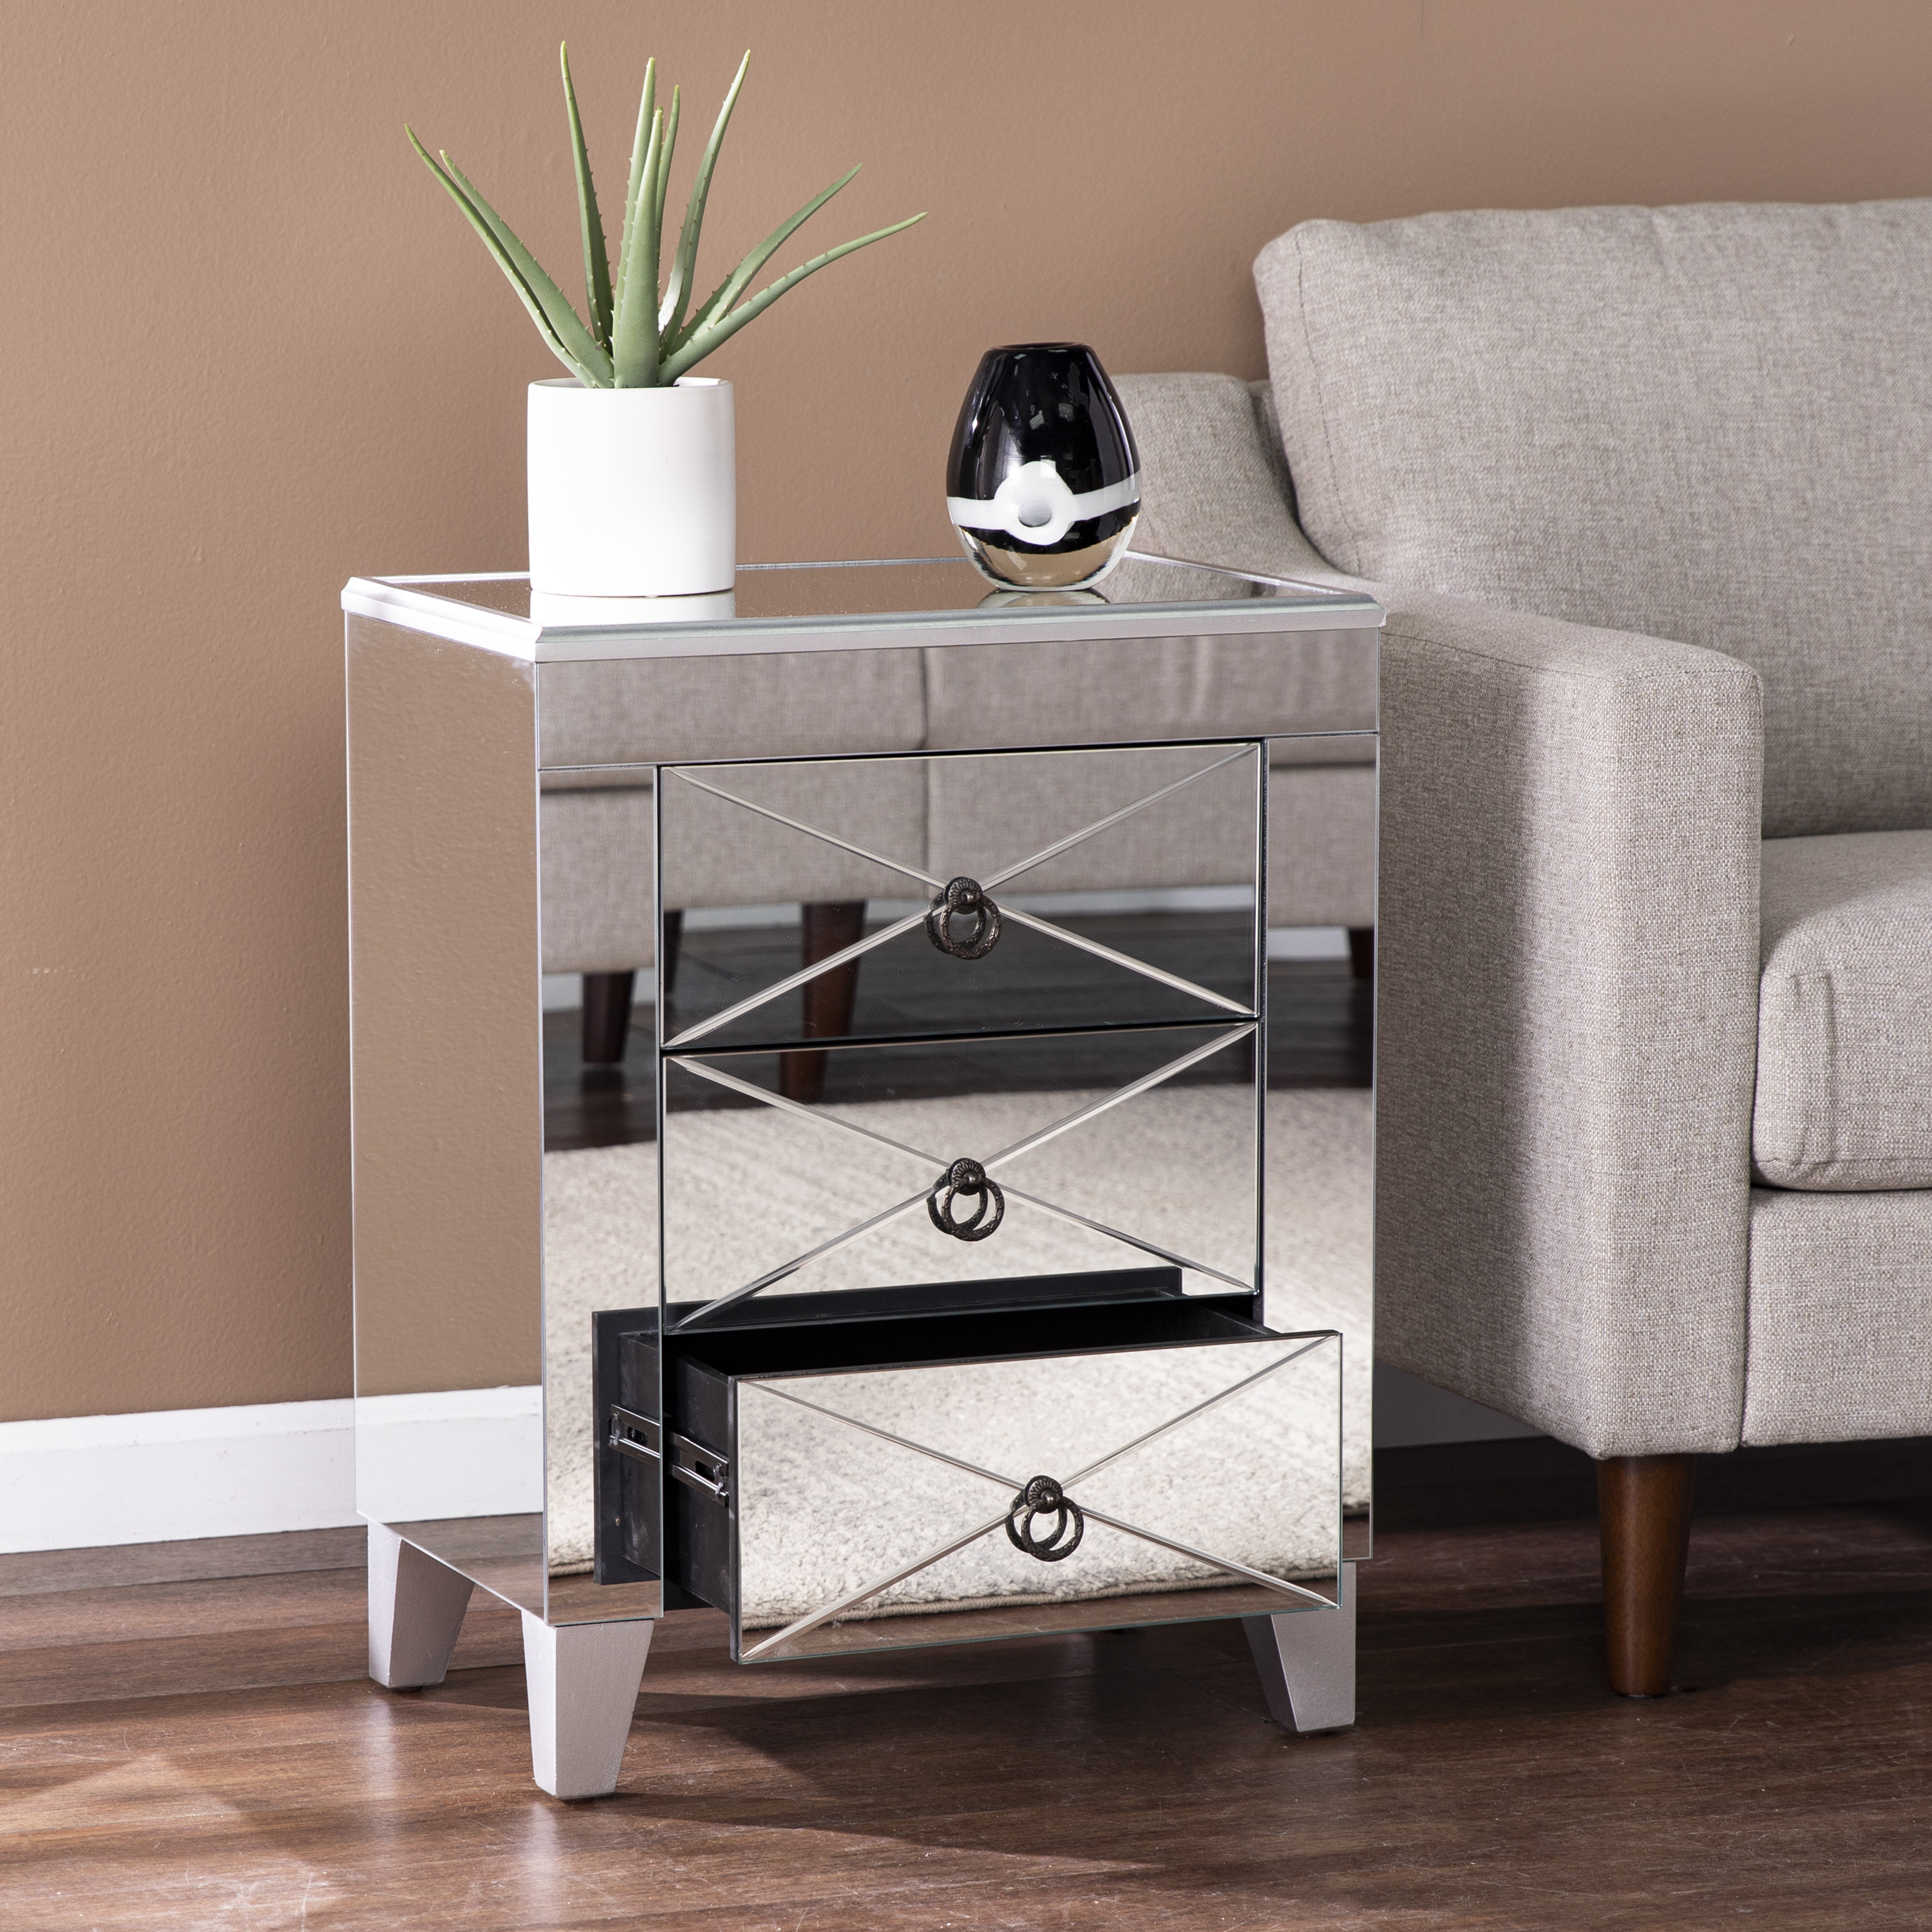 Derring Mirrored End Table